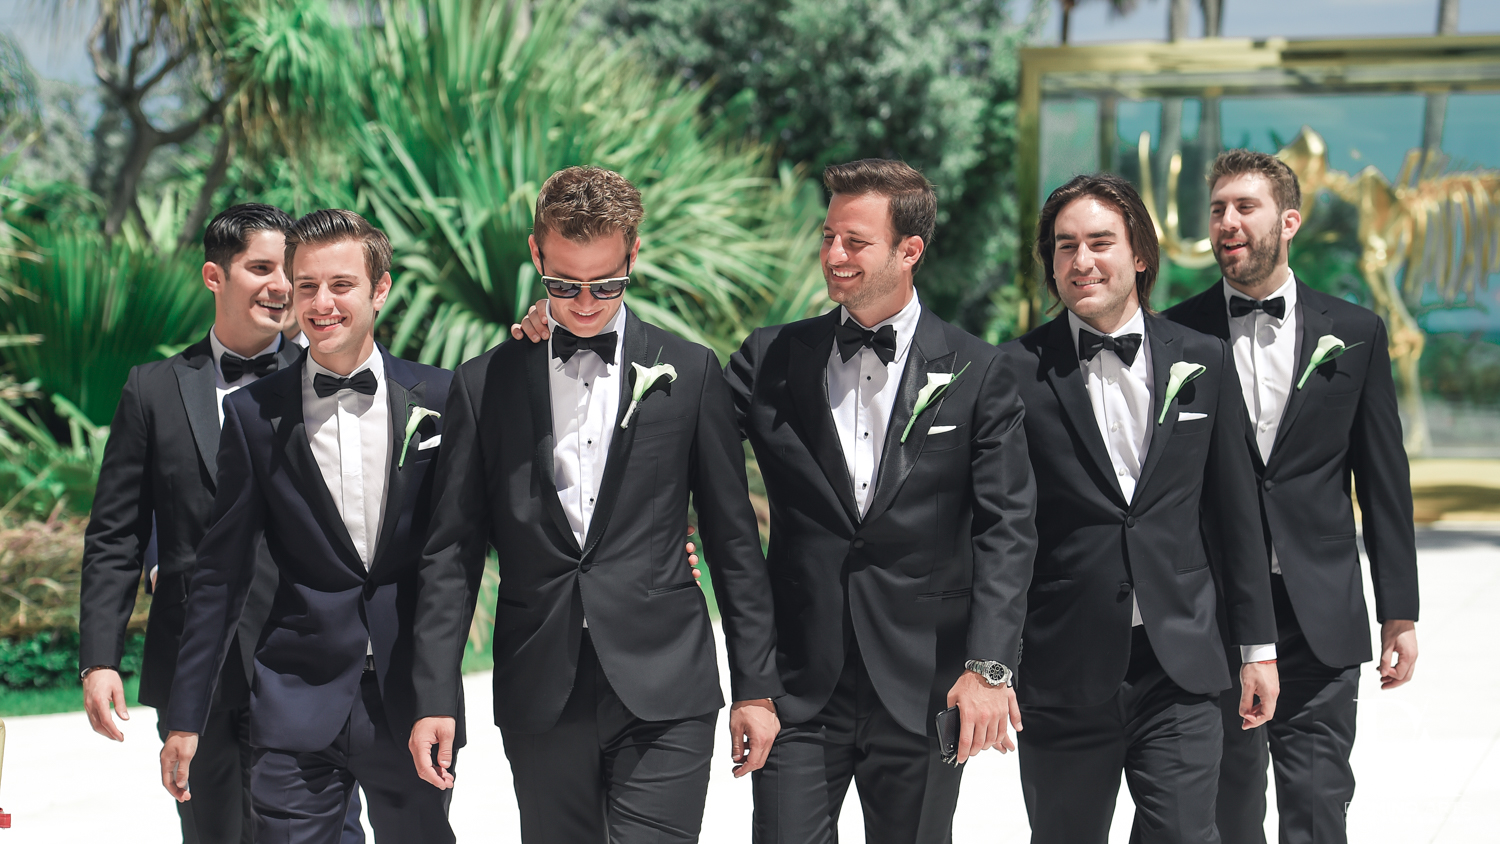 Cool wedding picture of groomsman at Faena Hotel Miami Beach